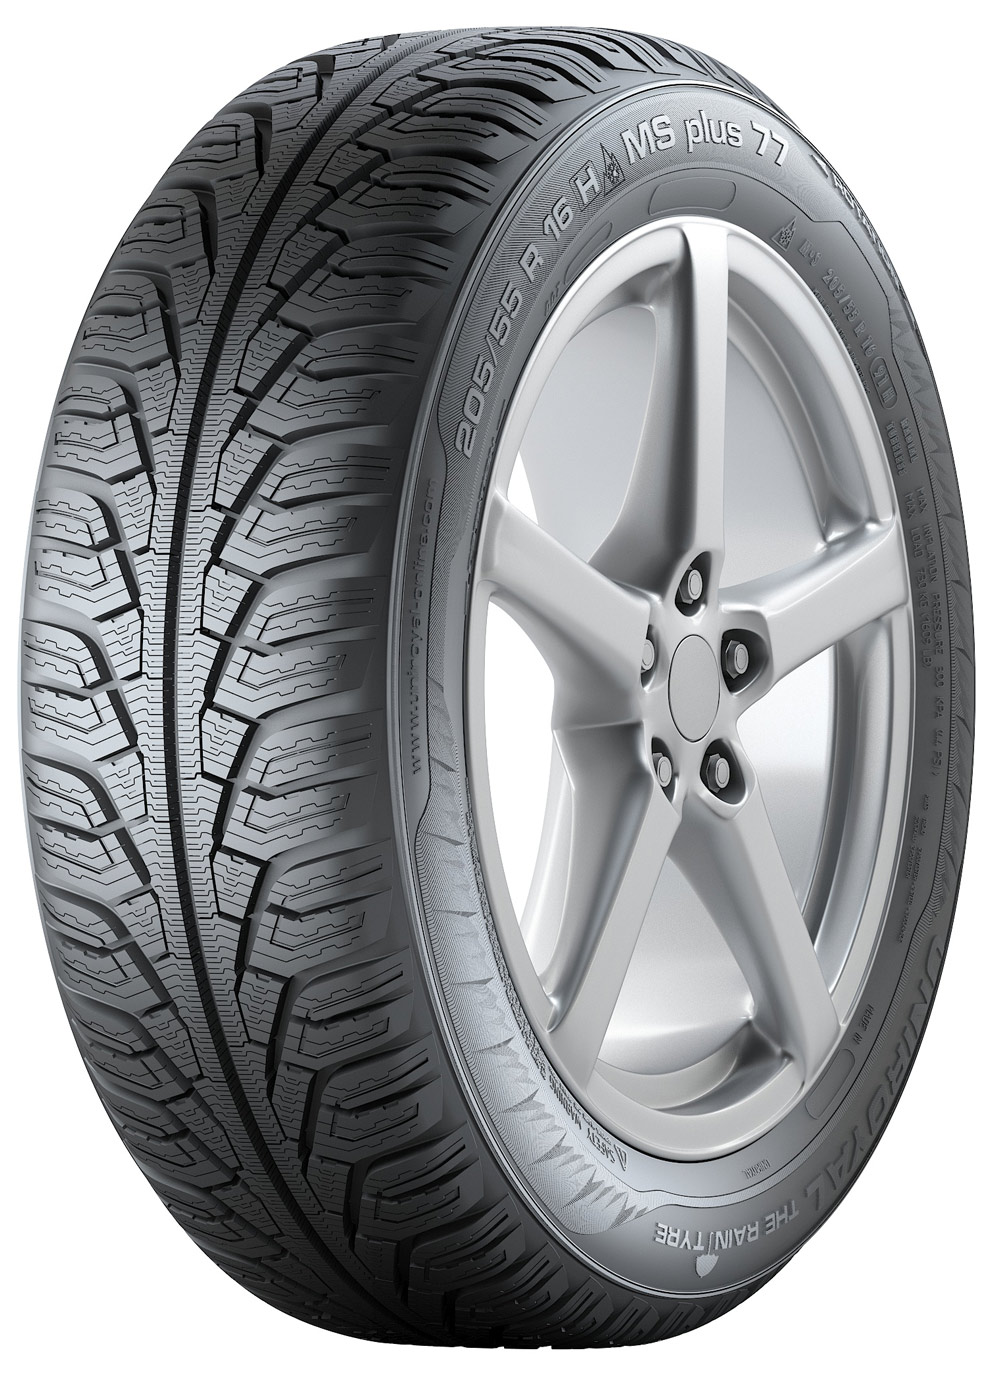 UNIROYAL MS PLUS 77 185/60 R 15